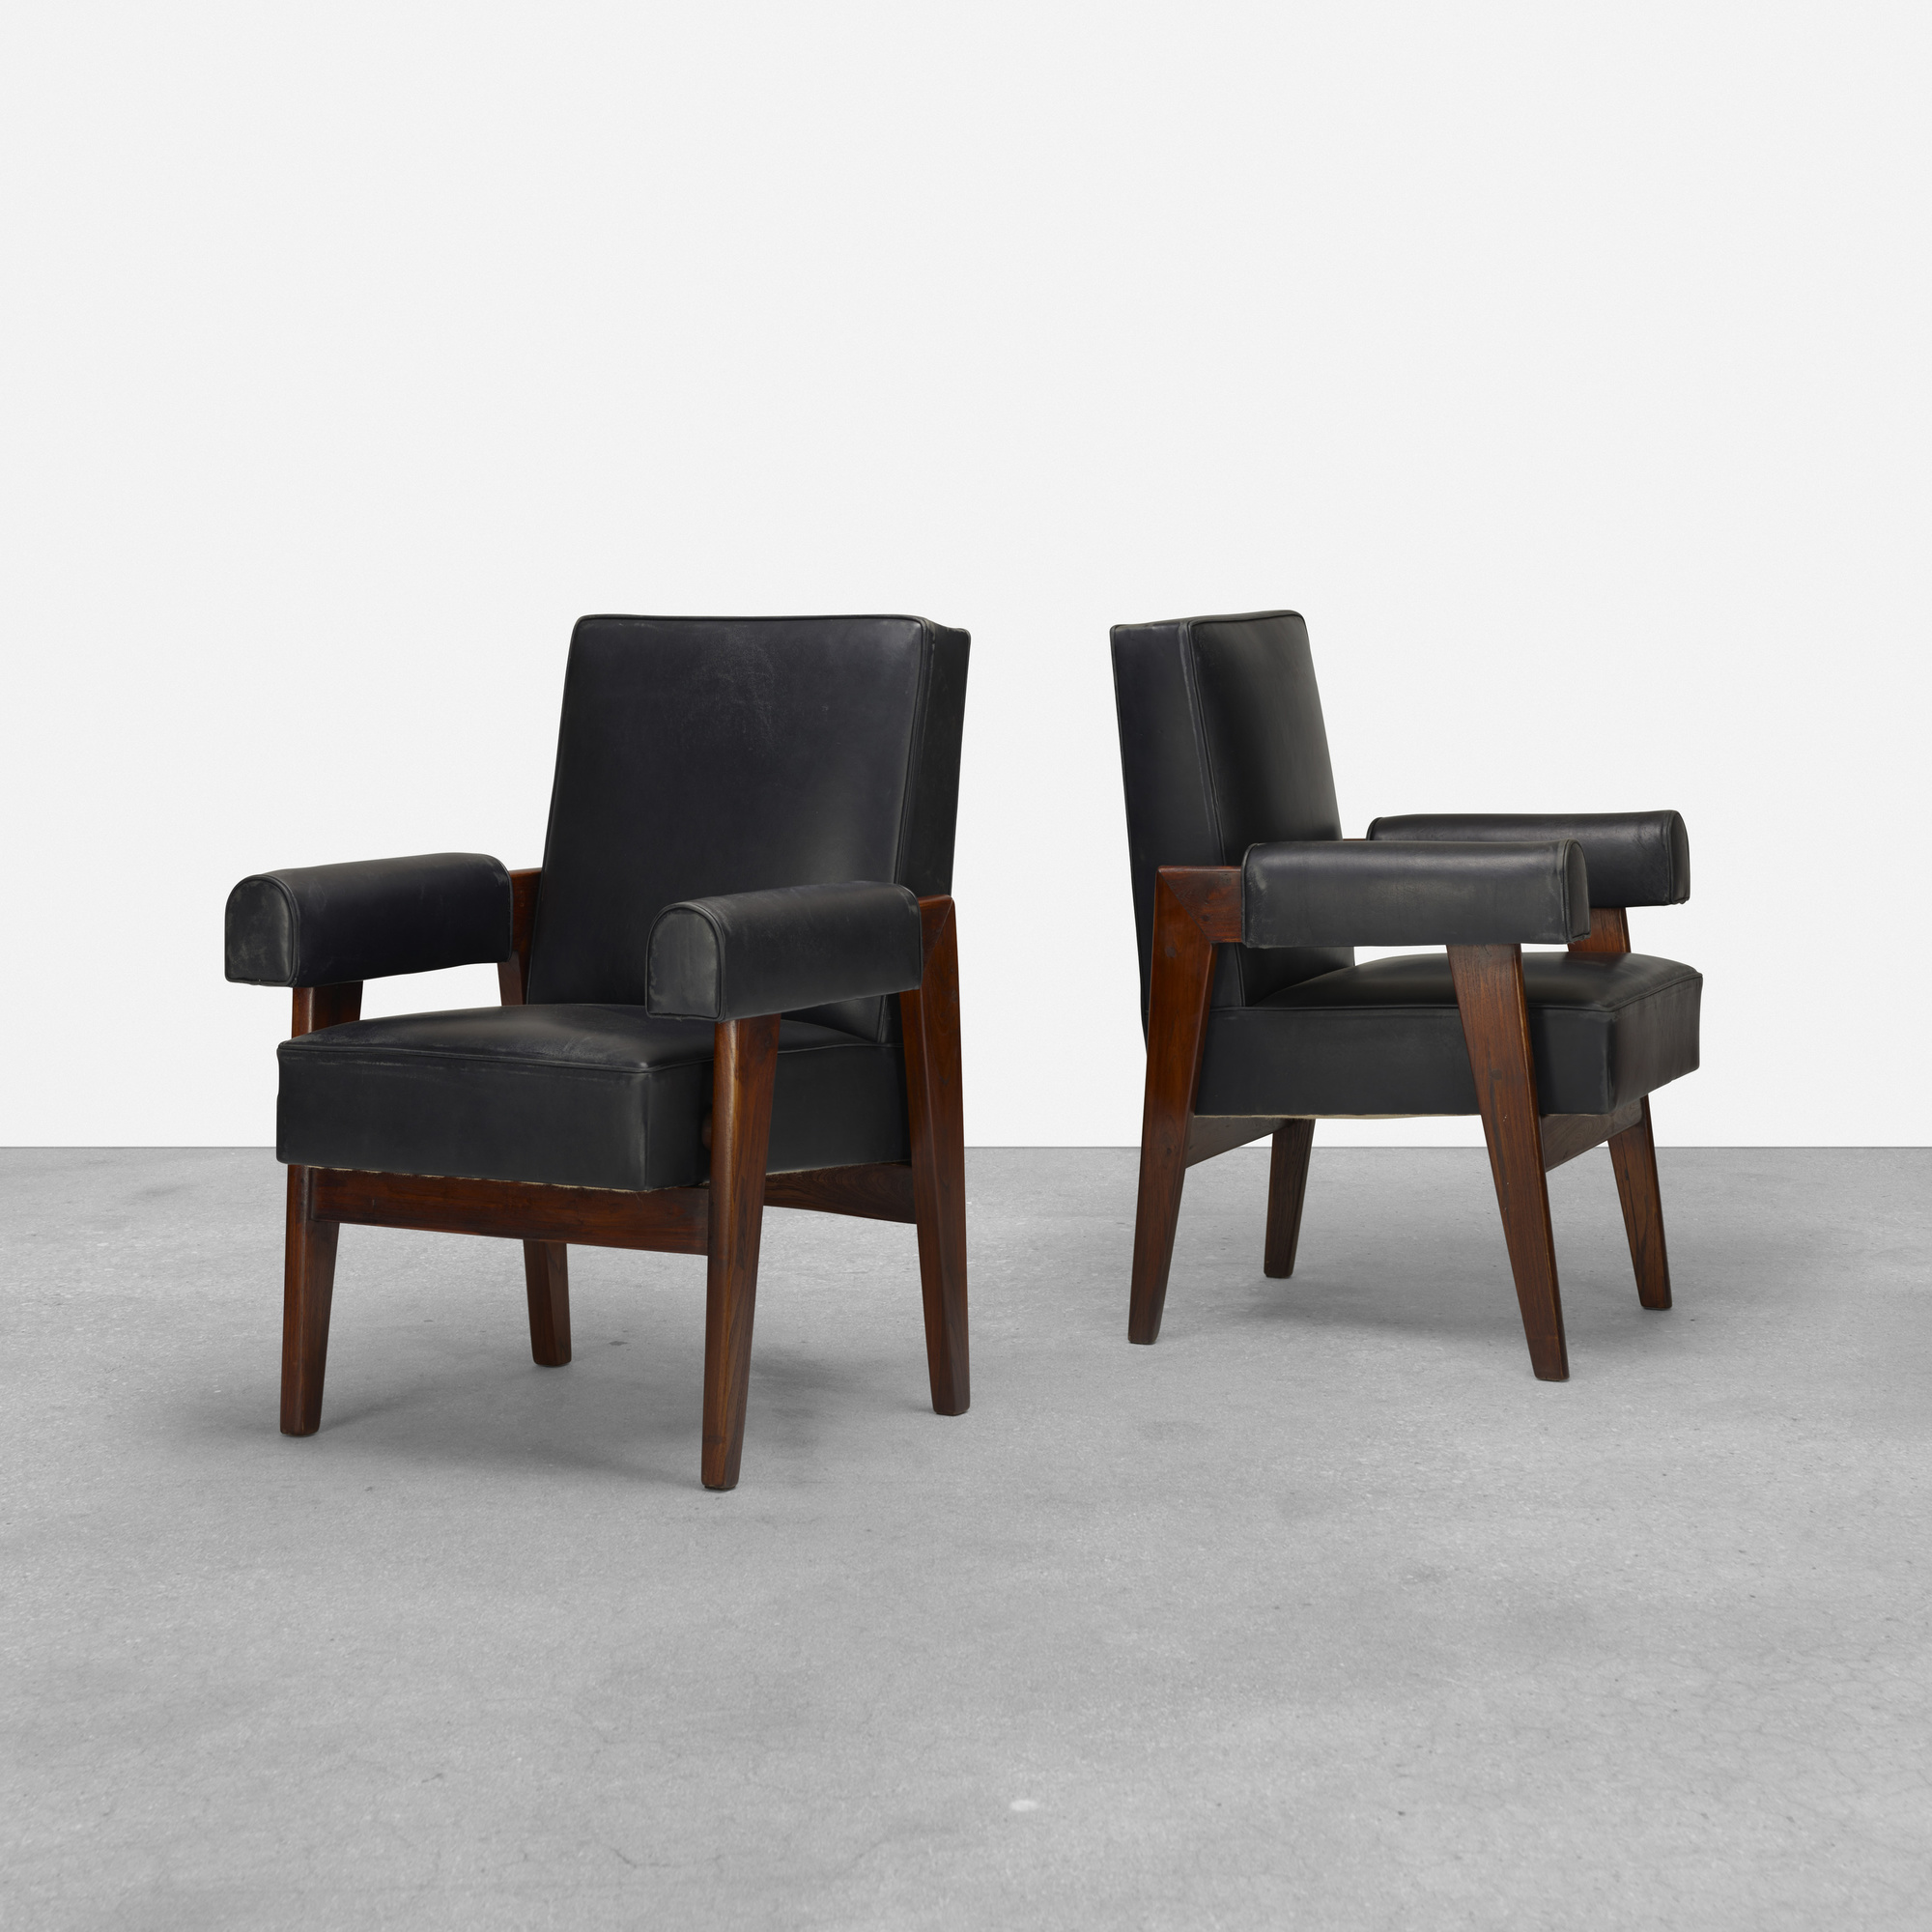 101: Le Corbusier and Pierre Jeanneret / pair of armchairs from the High Court, Chandigarh (1 of 2)